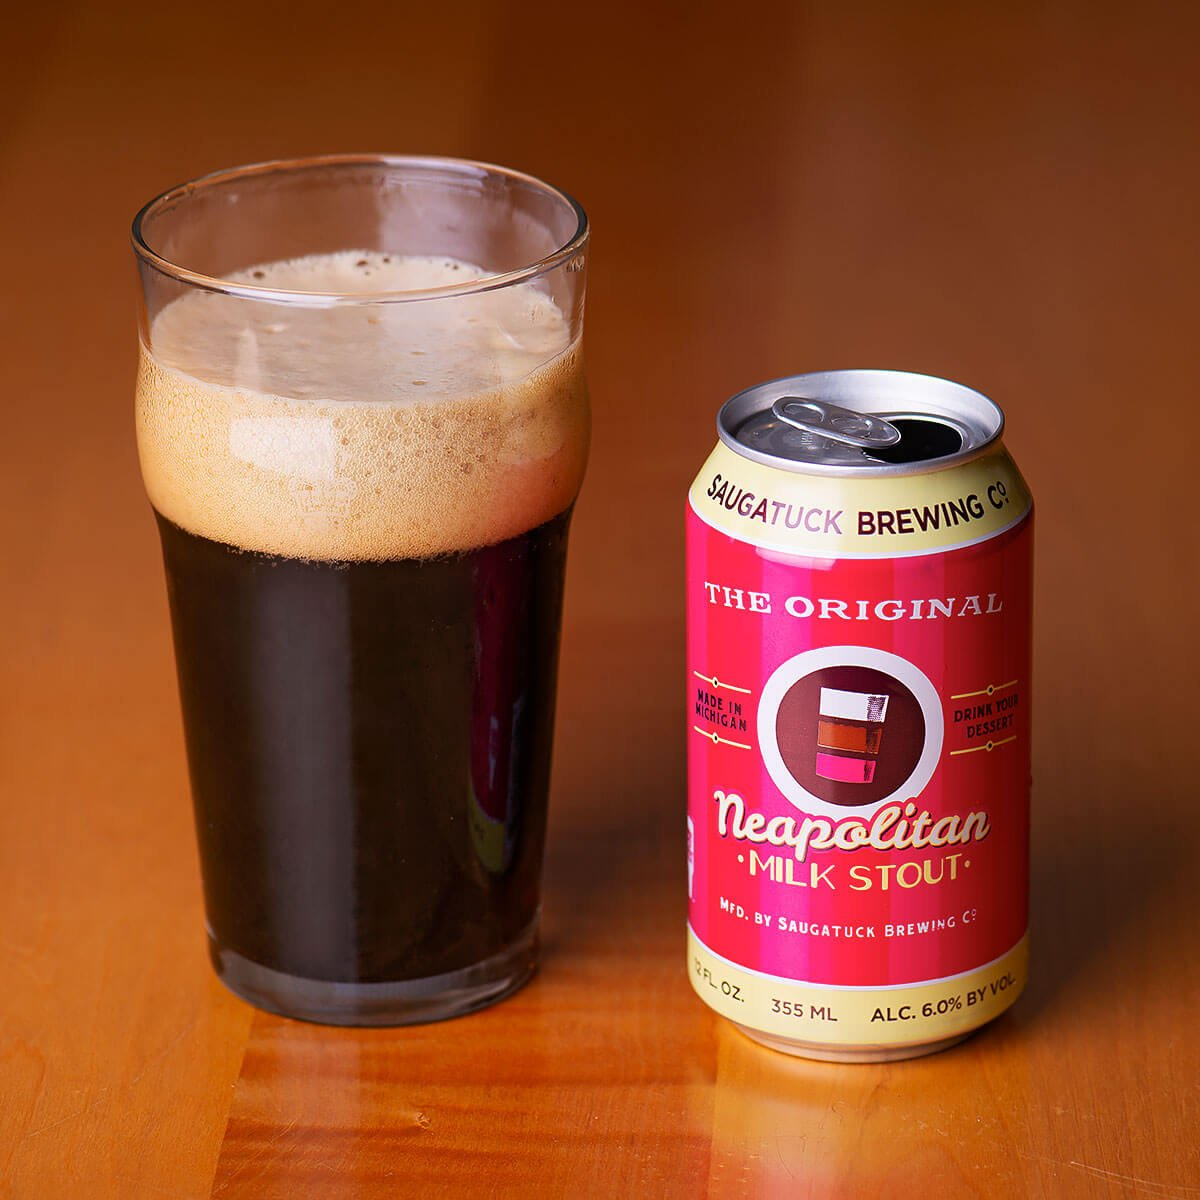 Neapolitan Milk Stout is a Milk Stout by Saugatuck Brewing Co. that blends sweet strawberry, vanilla, and chocolate with roast malt.